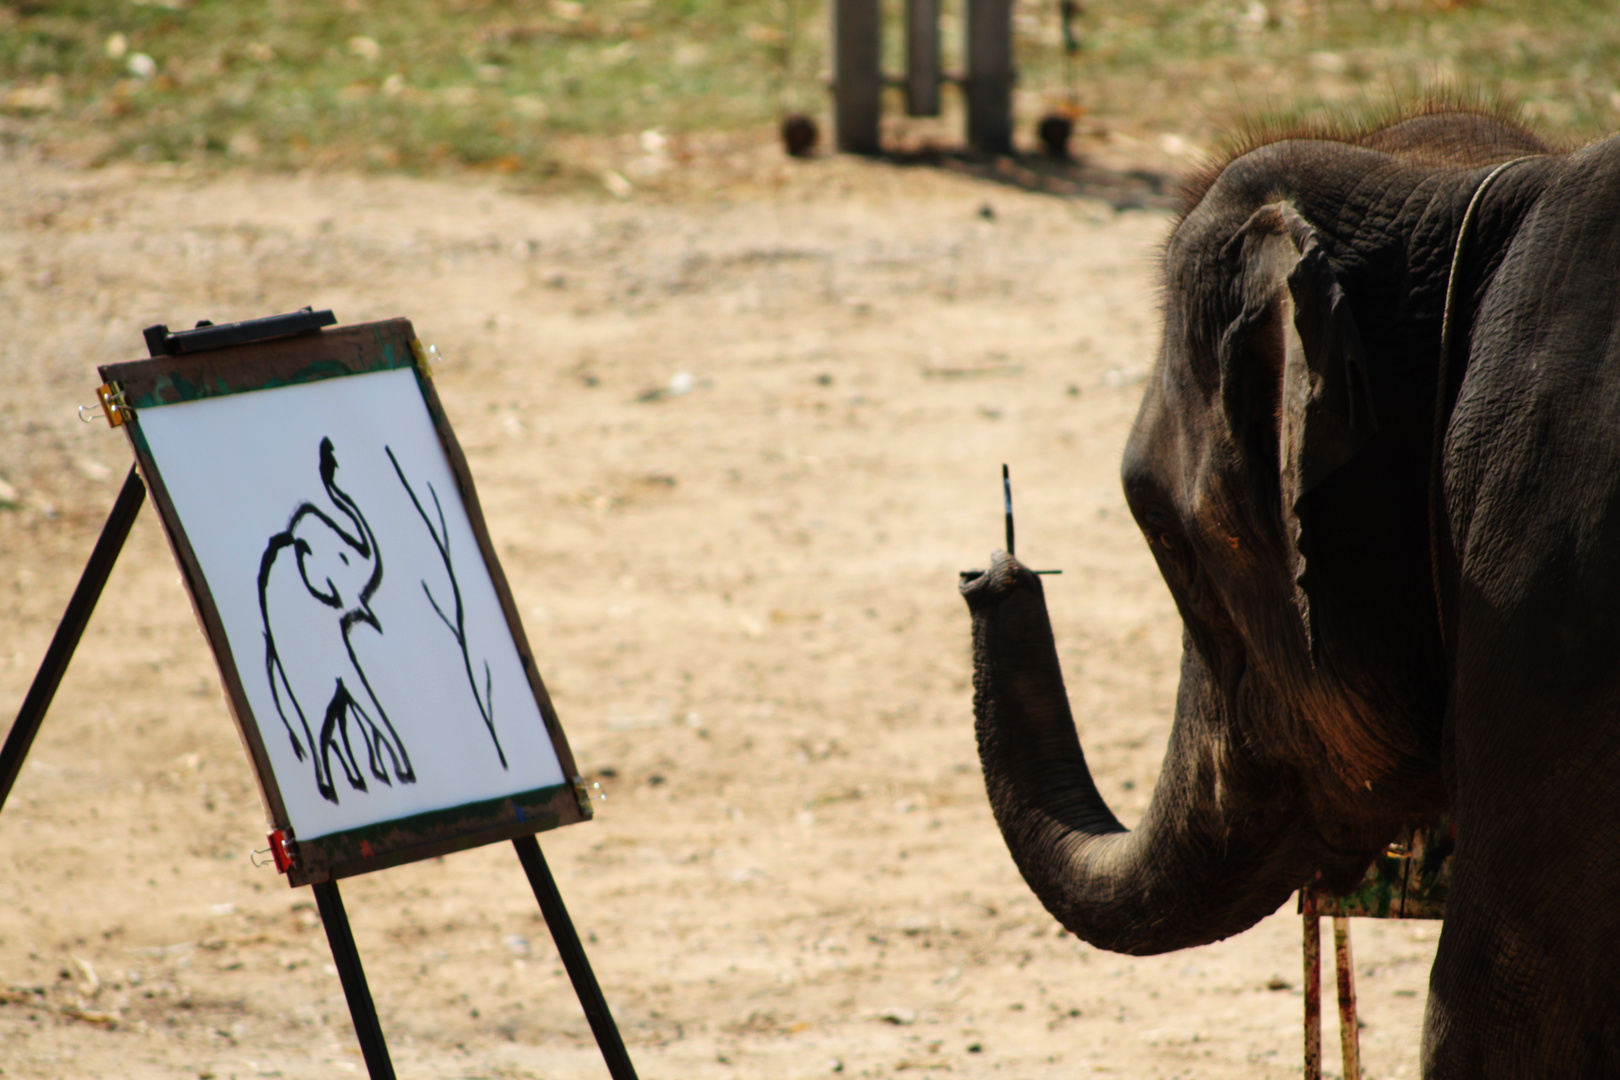 Picasso reincarnated as an elephant???